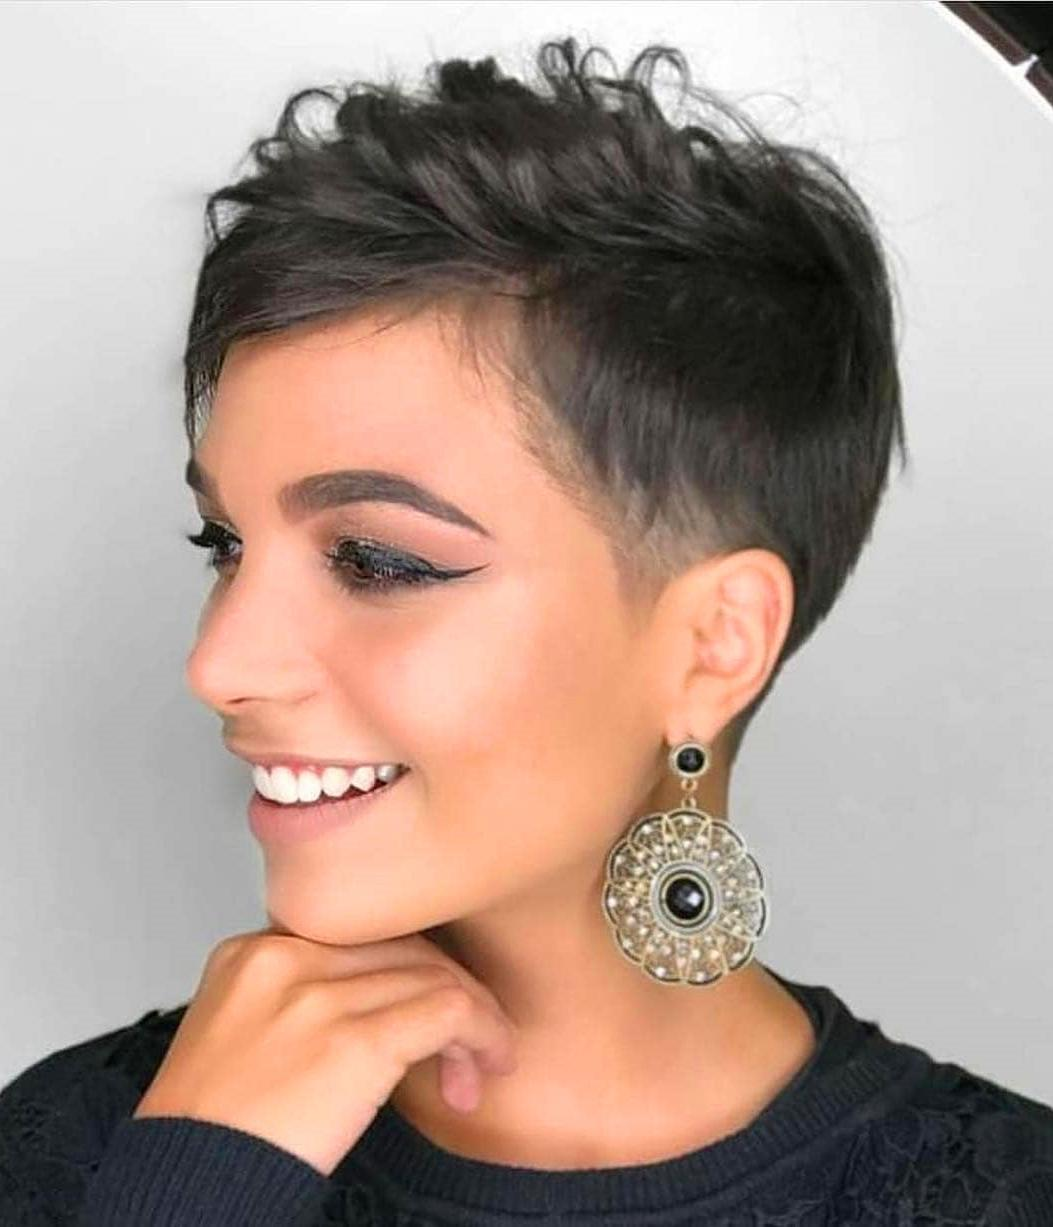 80 Trendy Short Pixie Hairstyles For Women #ShortHairstyles #Hairstyles #ShortHair